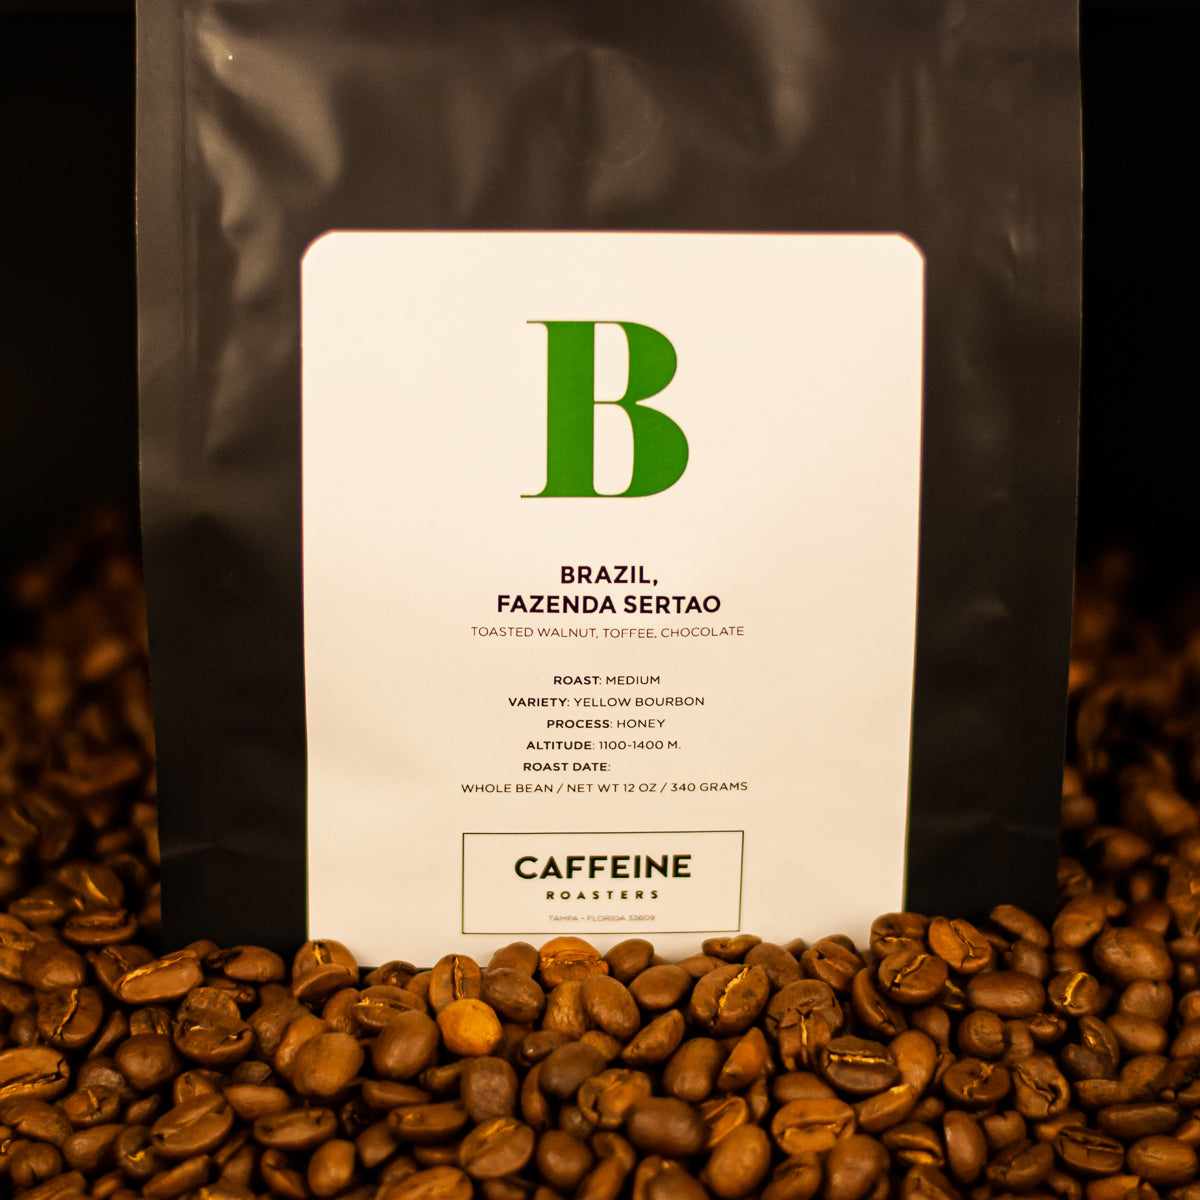 SINGLE ORIGIN: BRAZIL, FAZENDA SERTAO